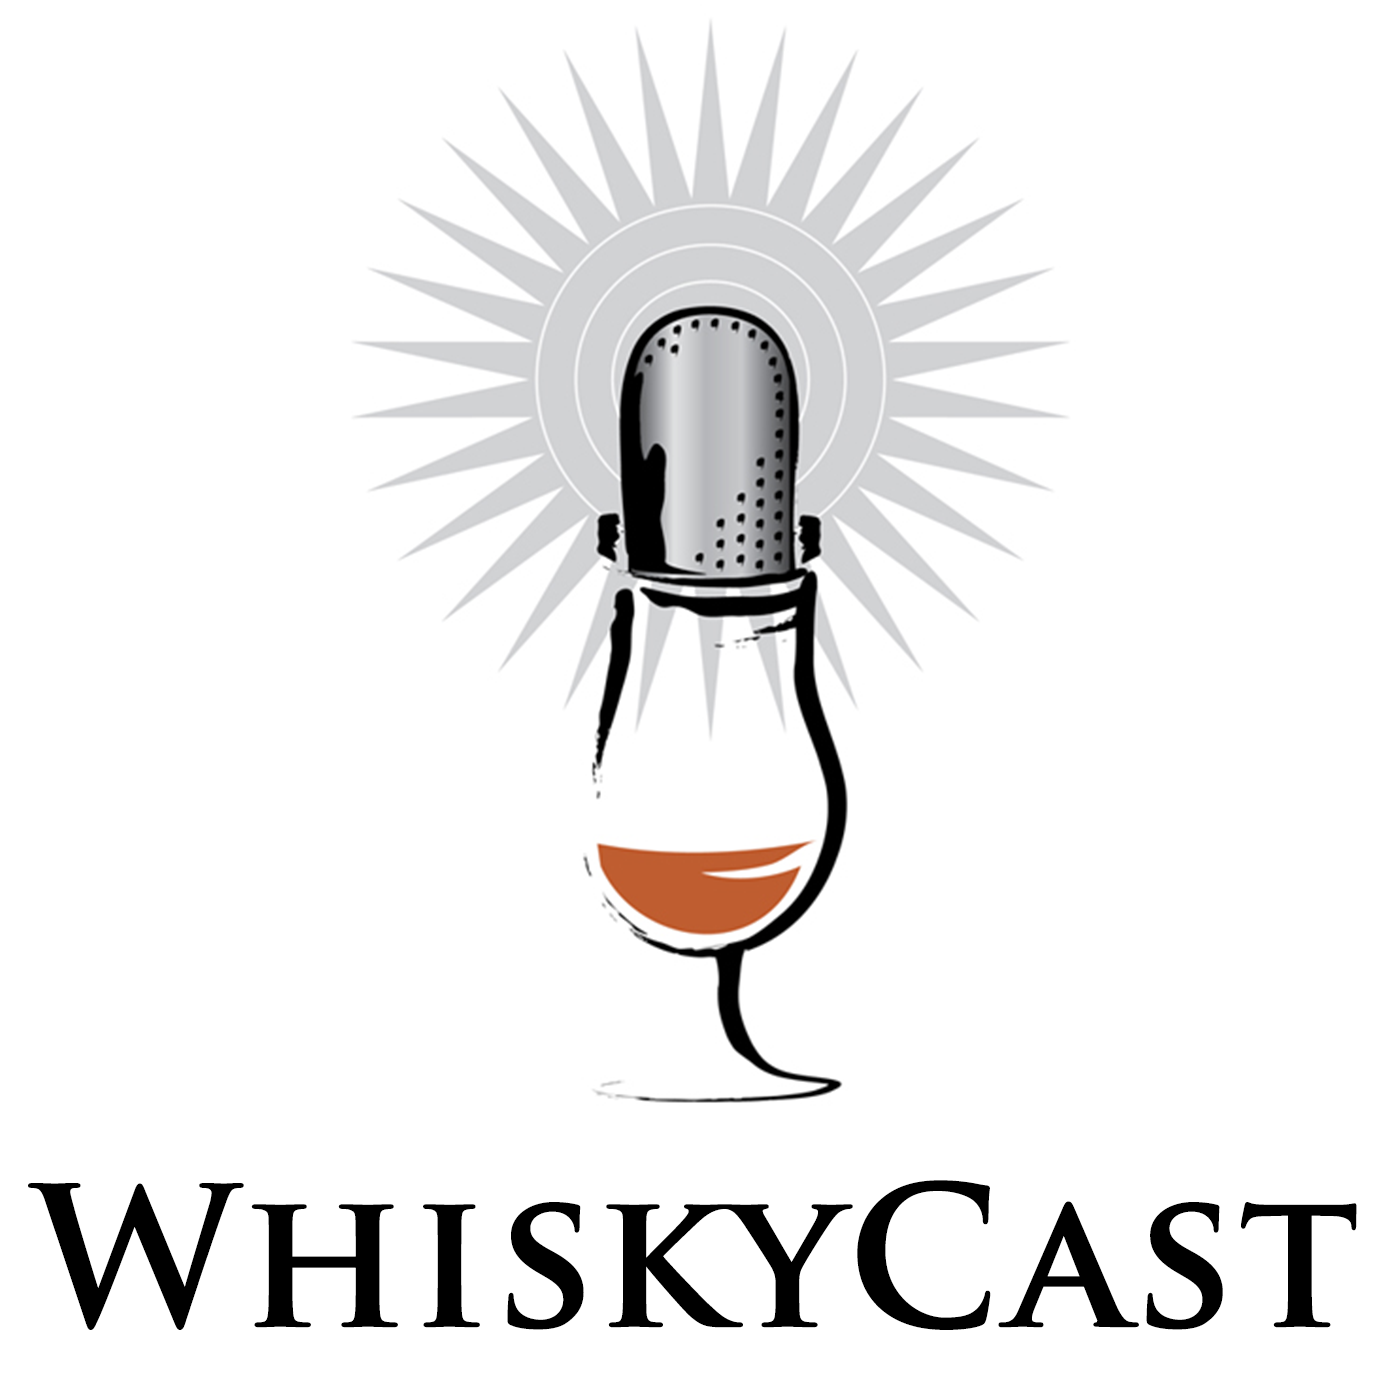 WhiskyCast Episode 429: June 16, 2013